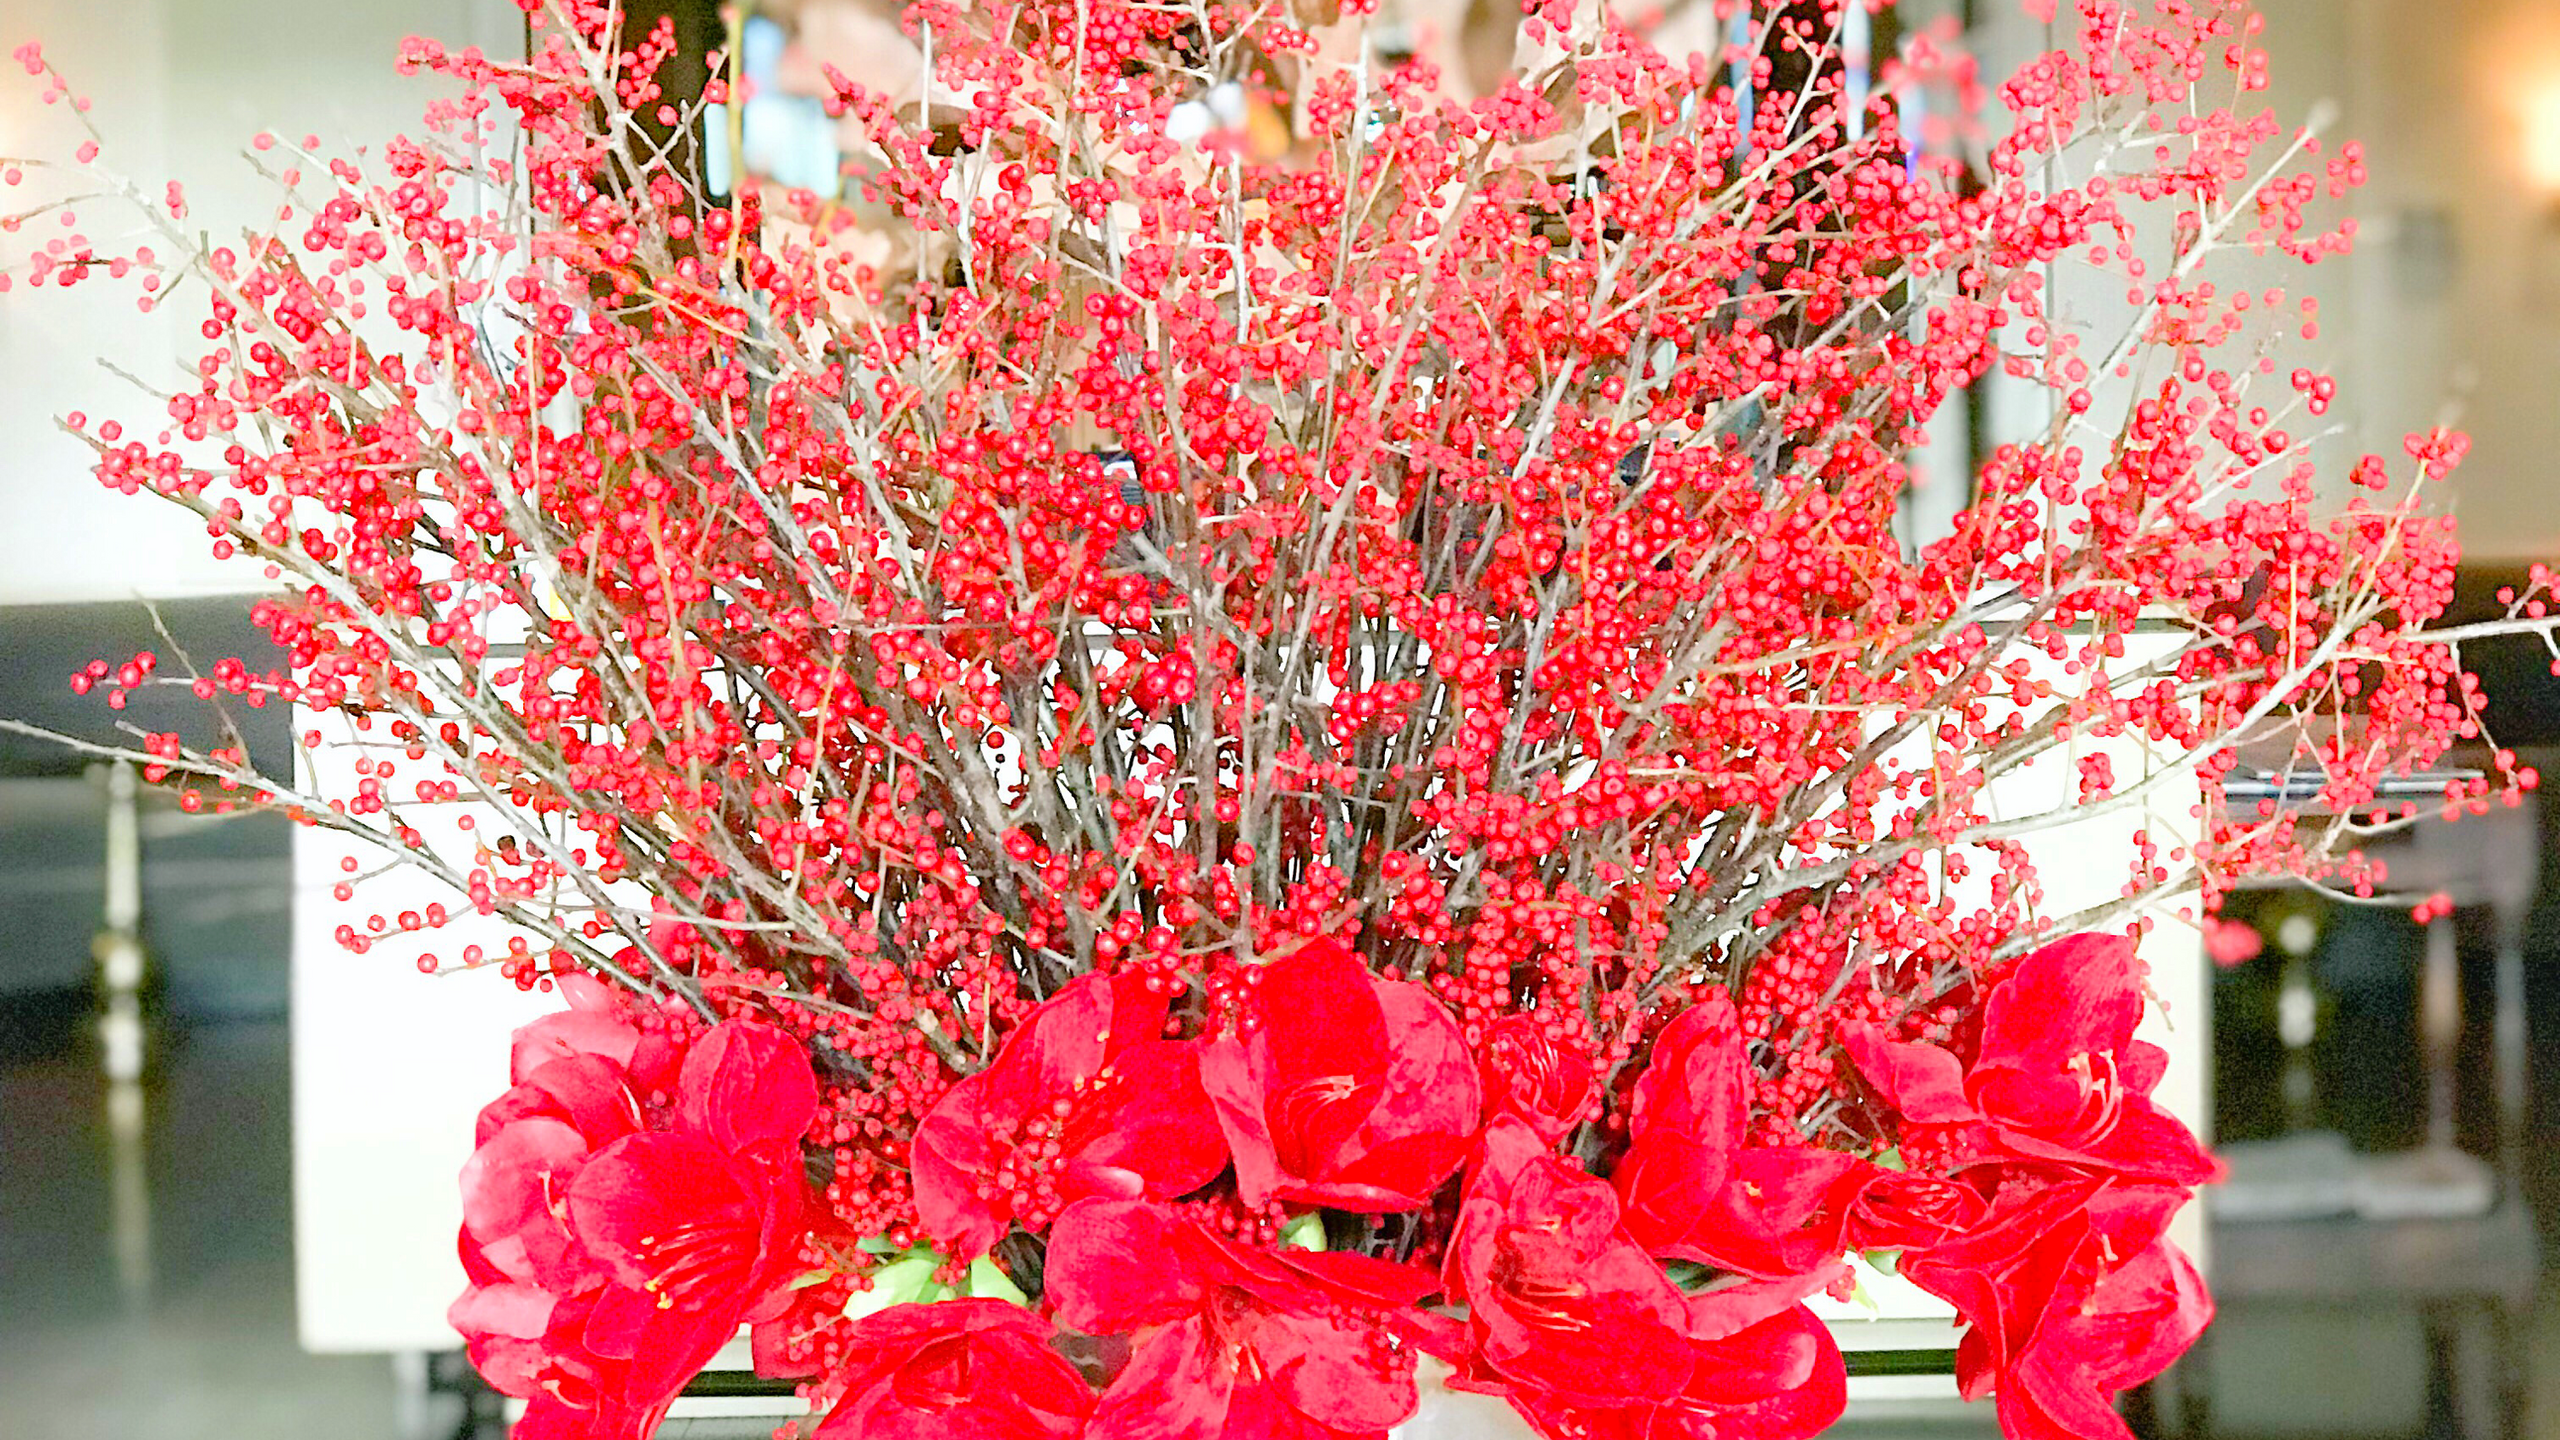 Oversized red berry centerpiece designed by Franzie's Flower Design for the Fairmont Dallas hotel, Pyramid Restaurant & Bar lobby.